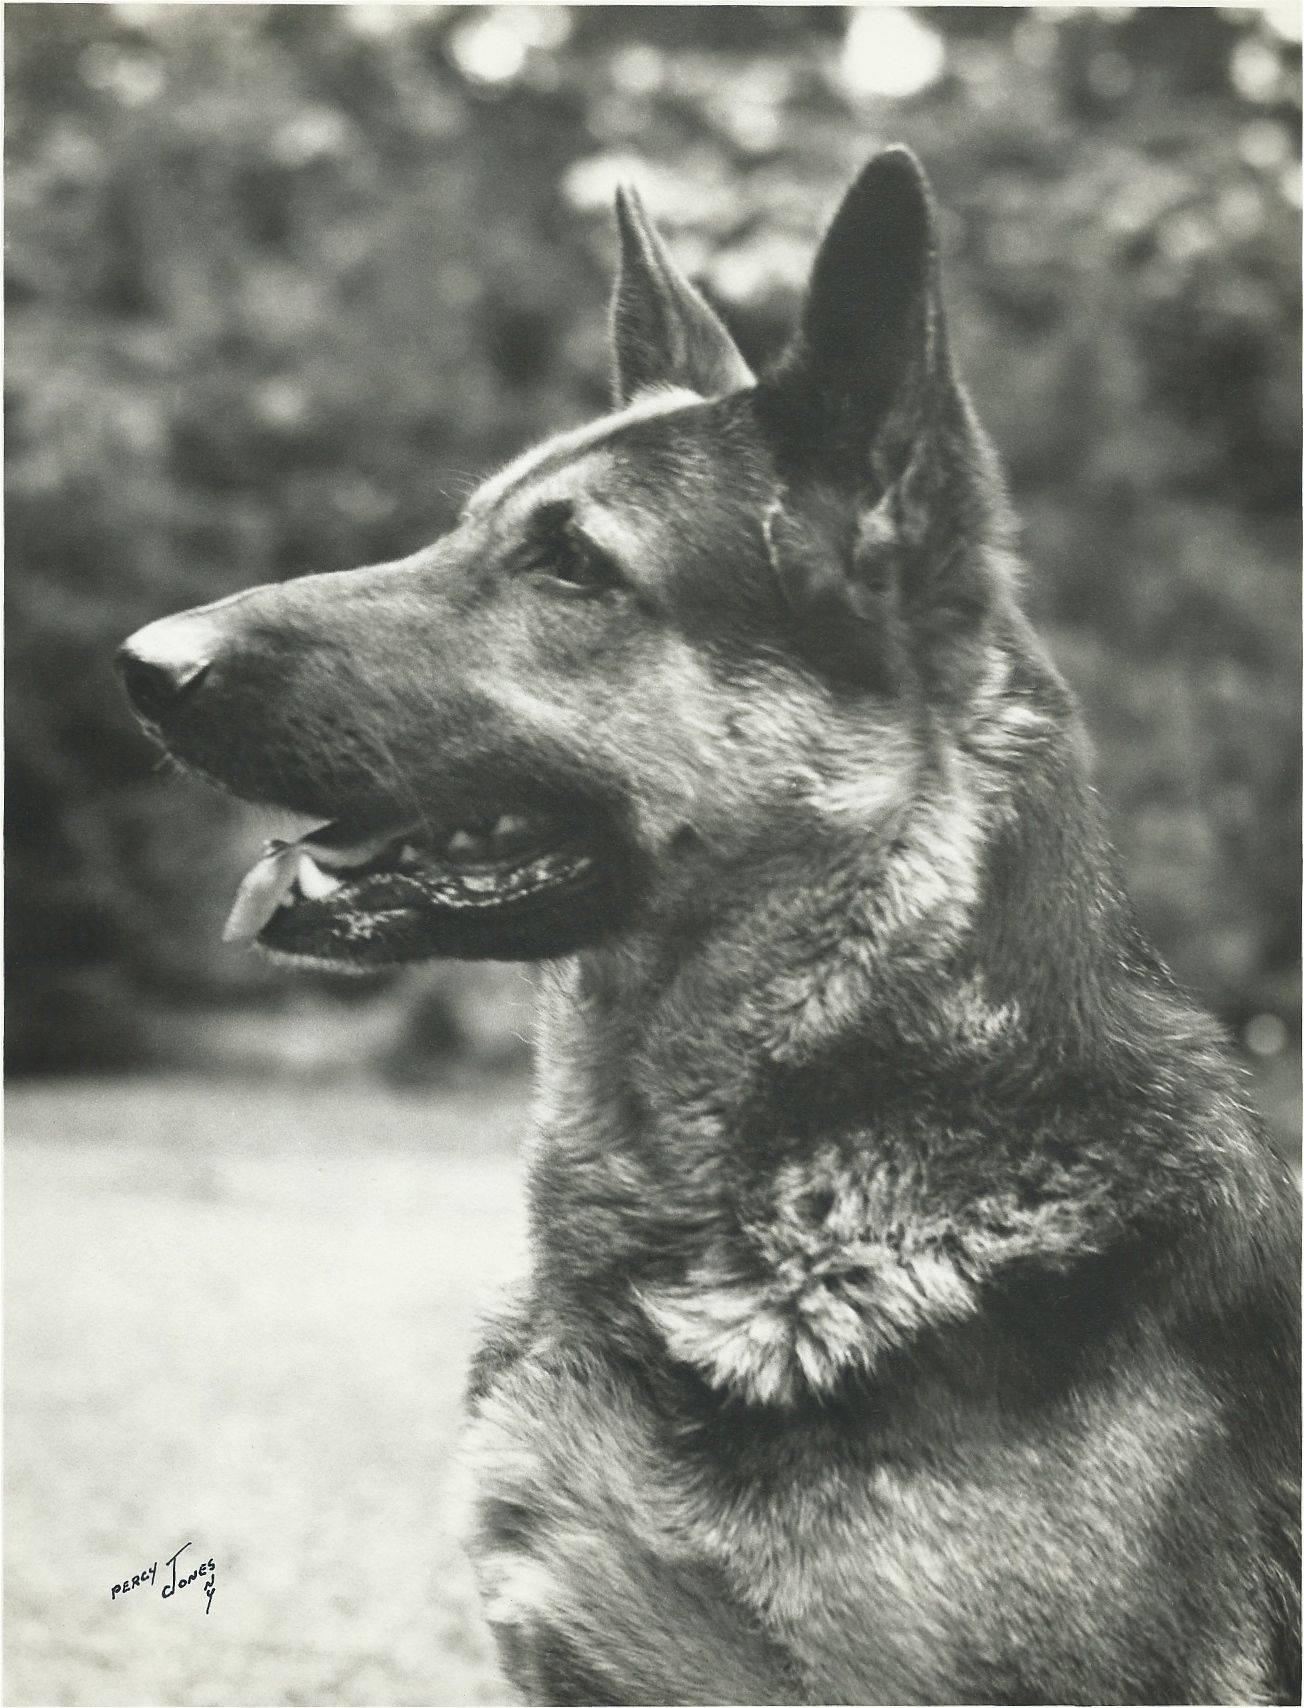 1950 60s 8x10 photo of German Shepherd Dog signed lower left by